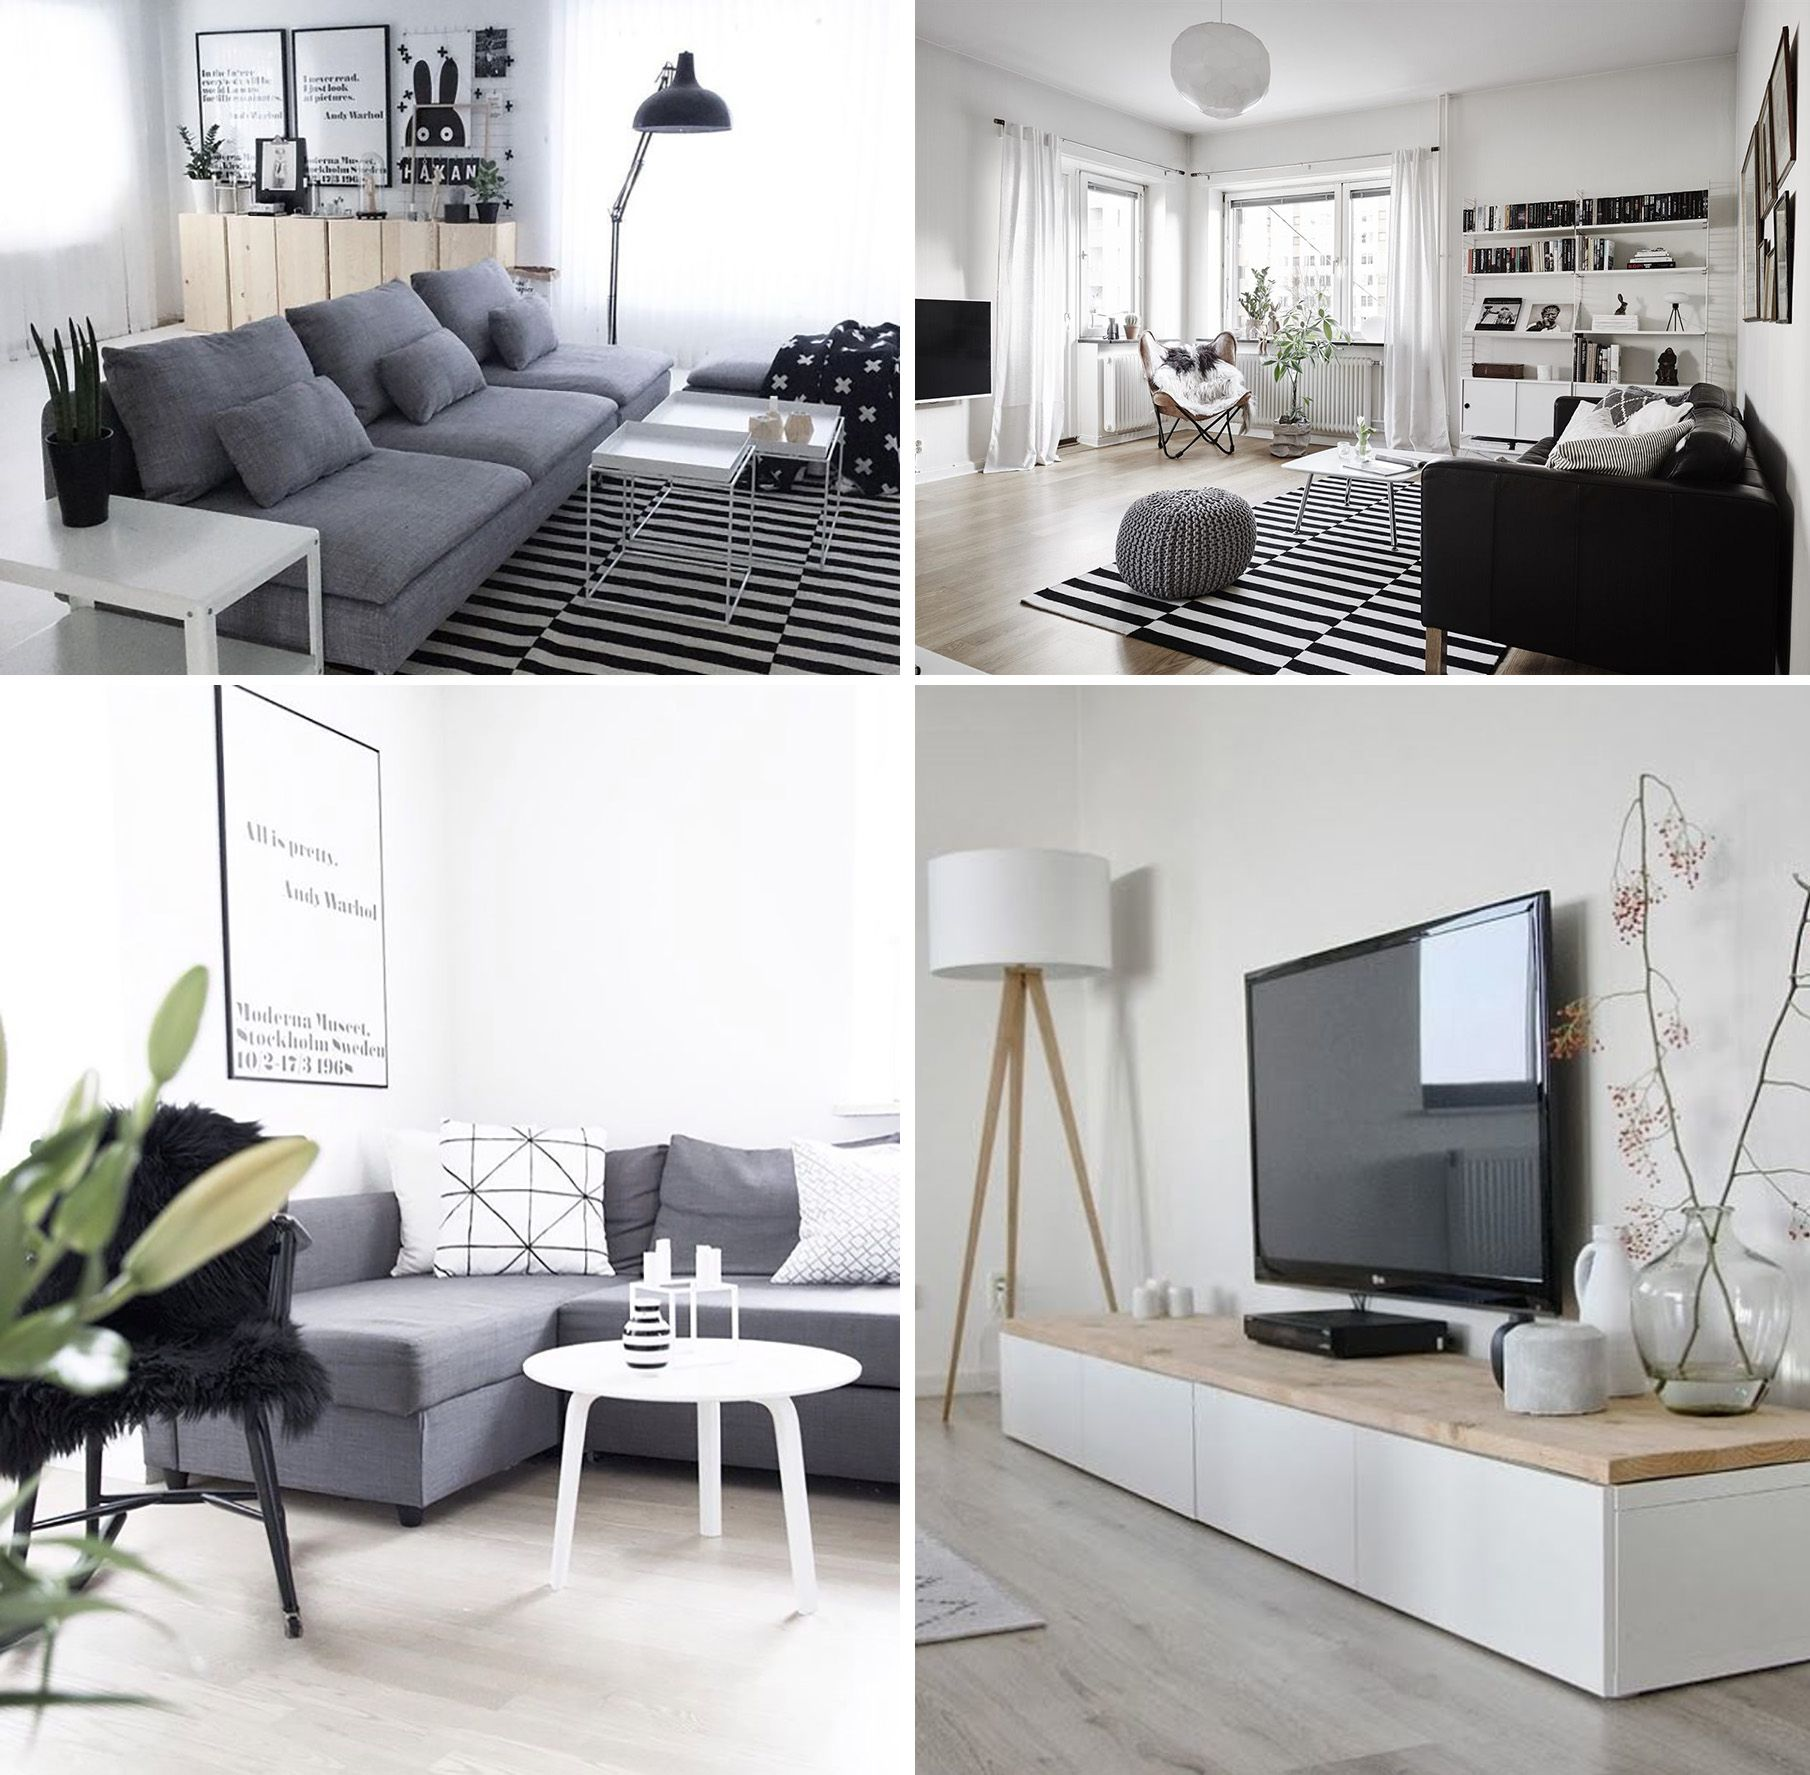 Living Room Vs Family Room What Is The Difference Living Room